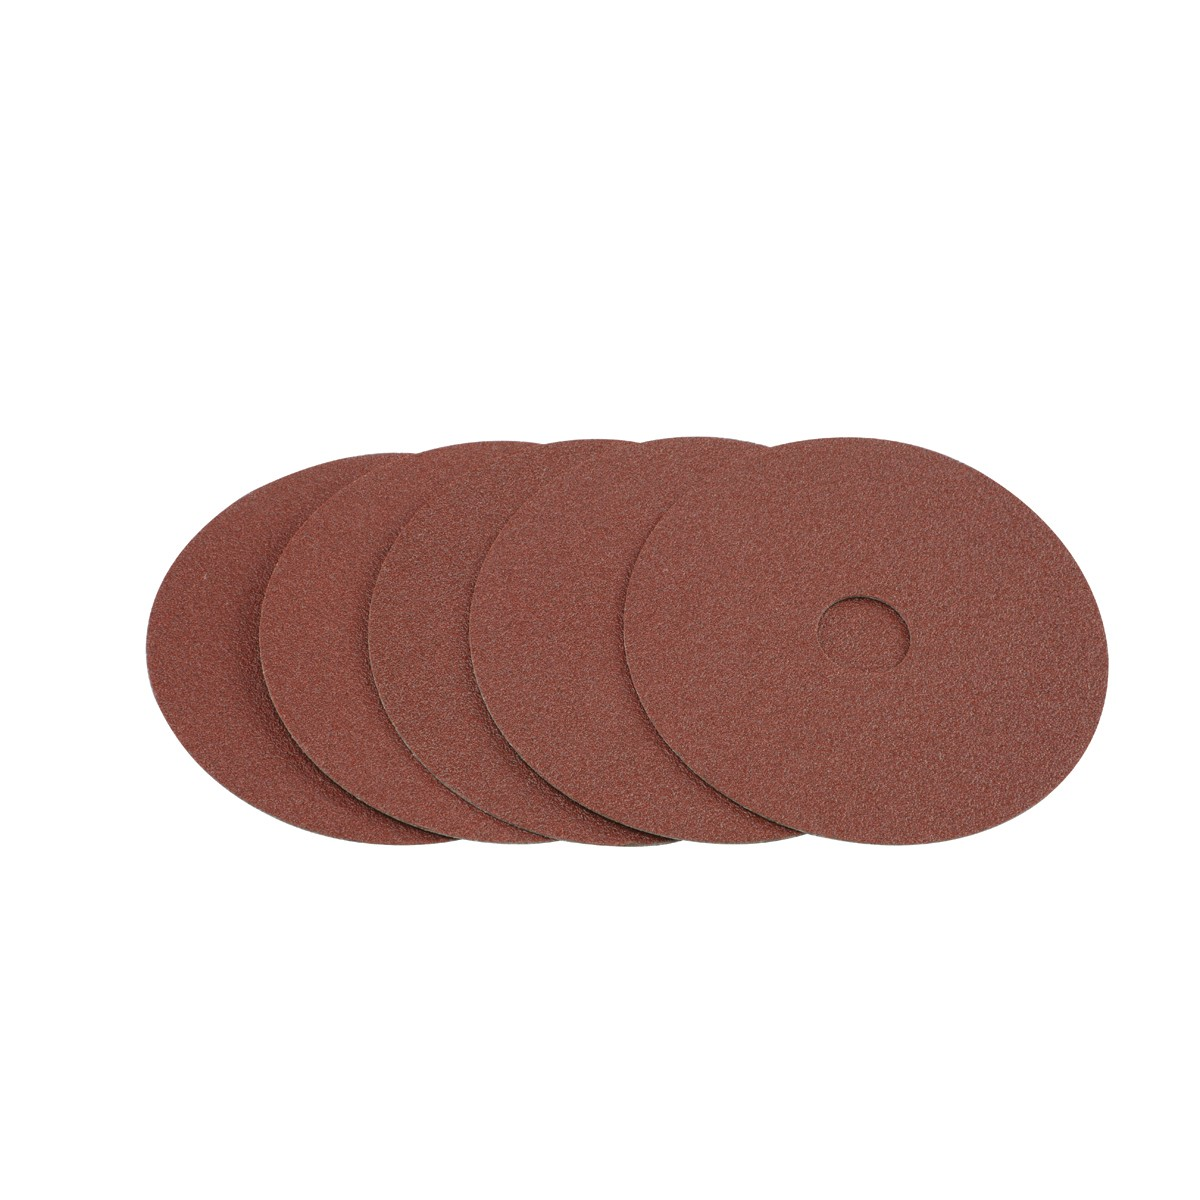 4-1/2 in. 80 Grit Resin Fiber Sanding Discs 5 Pc